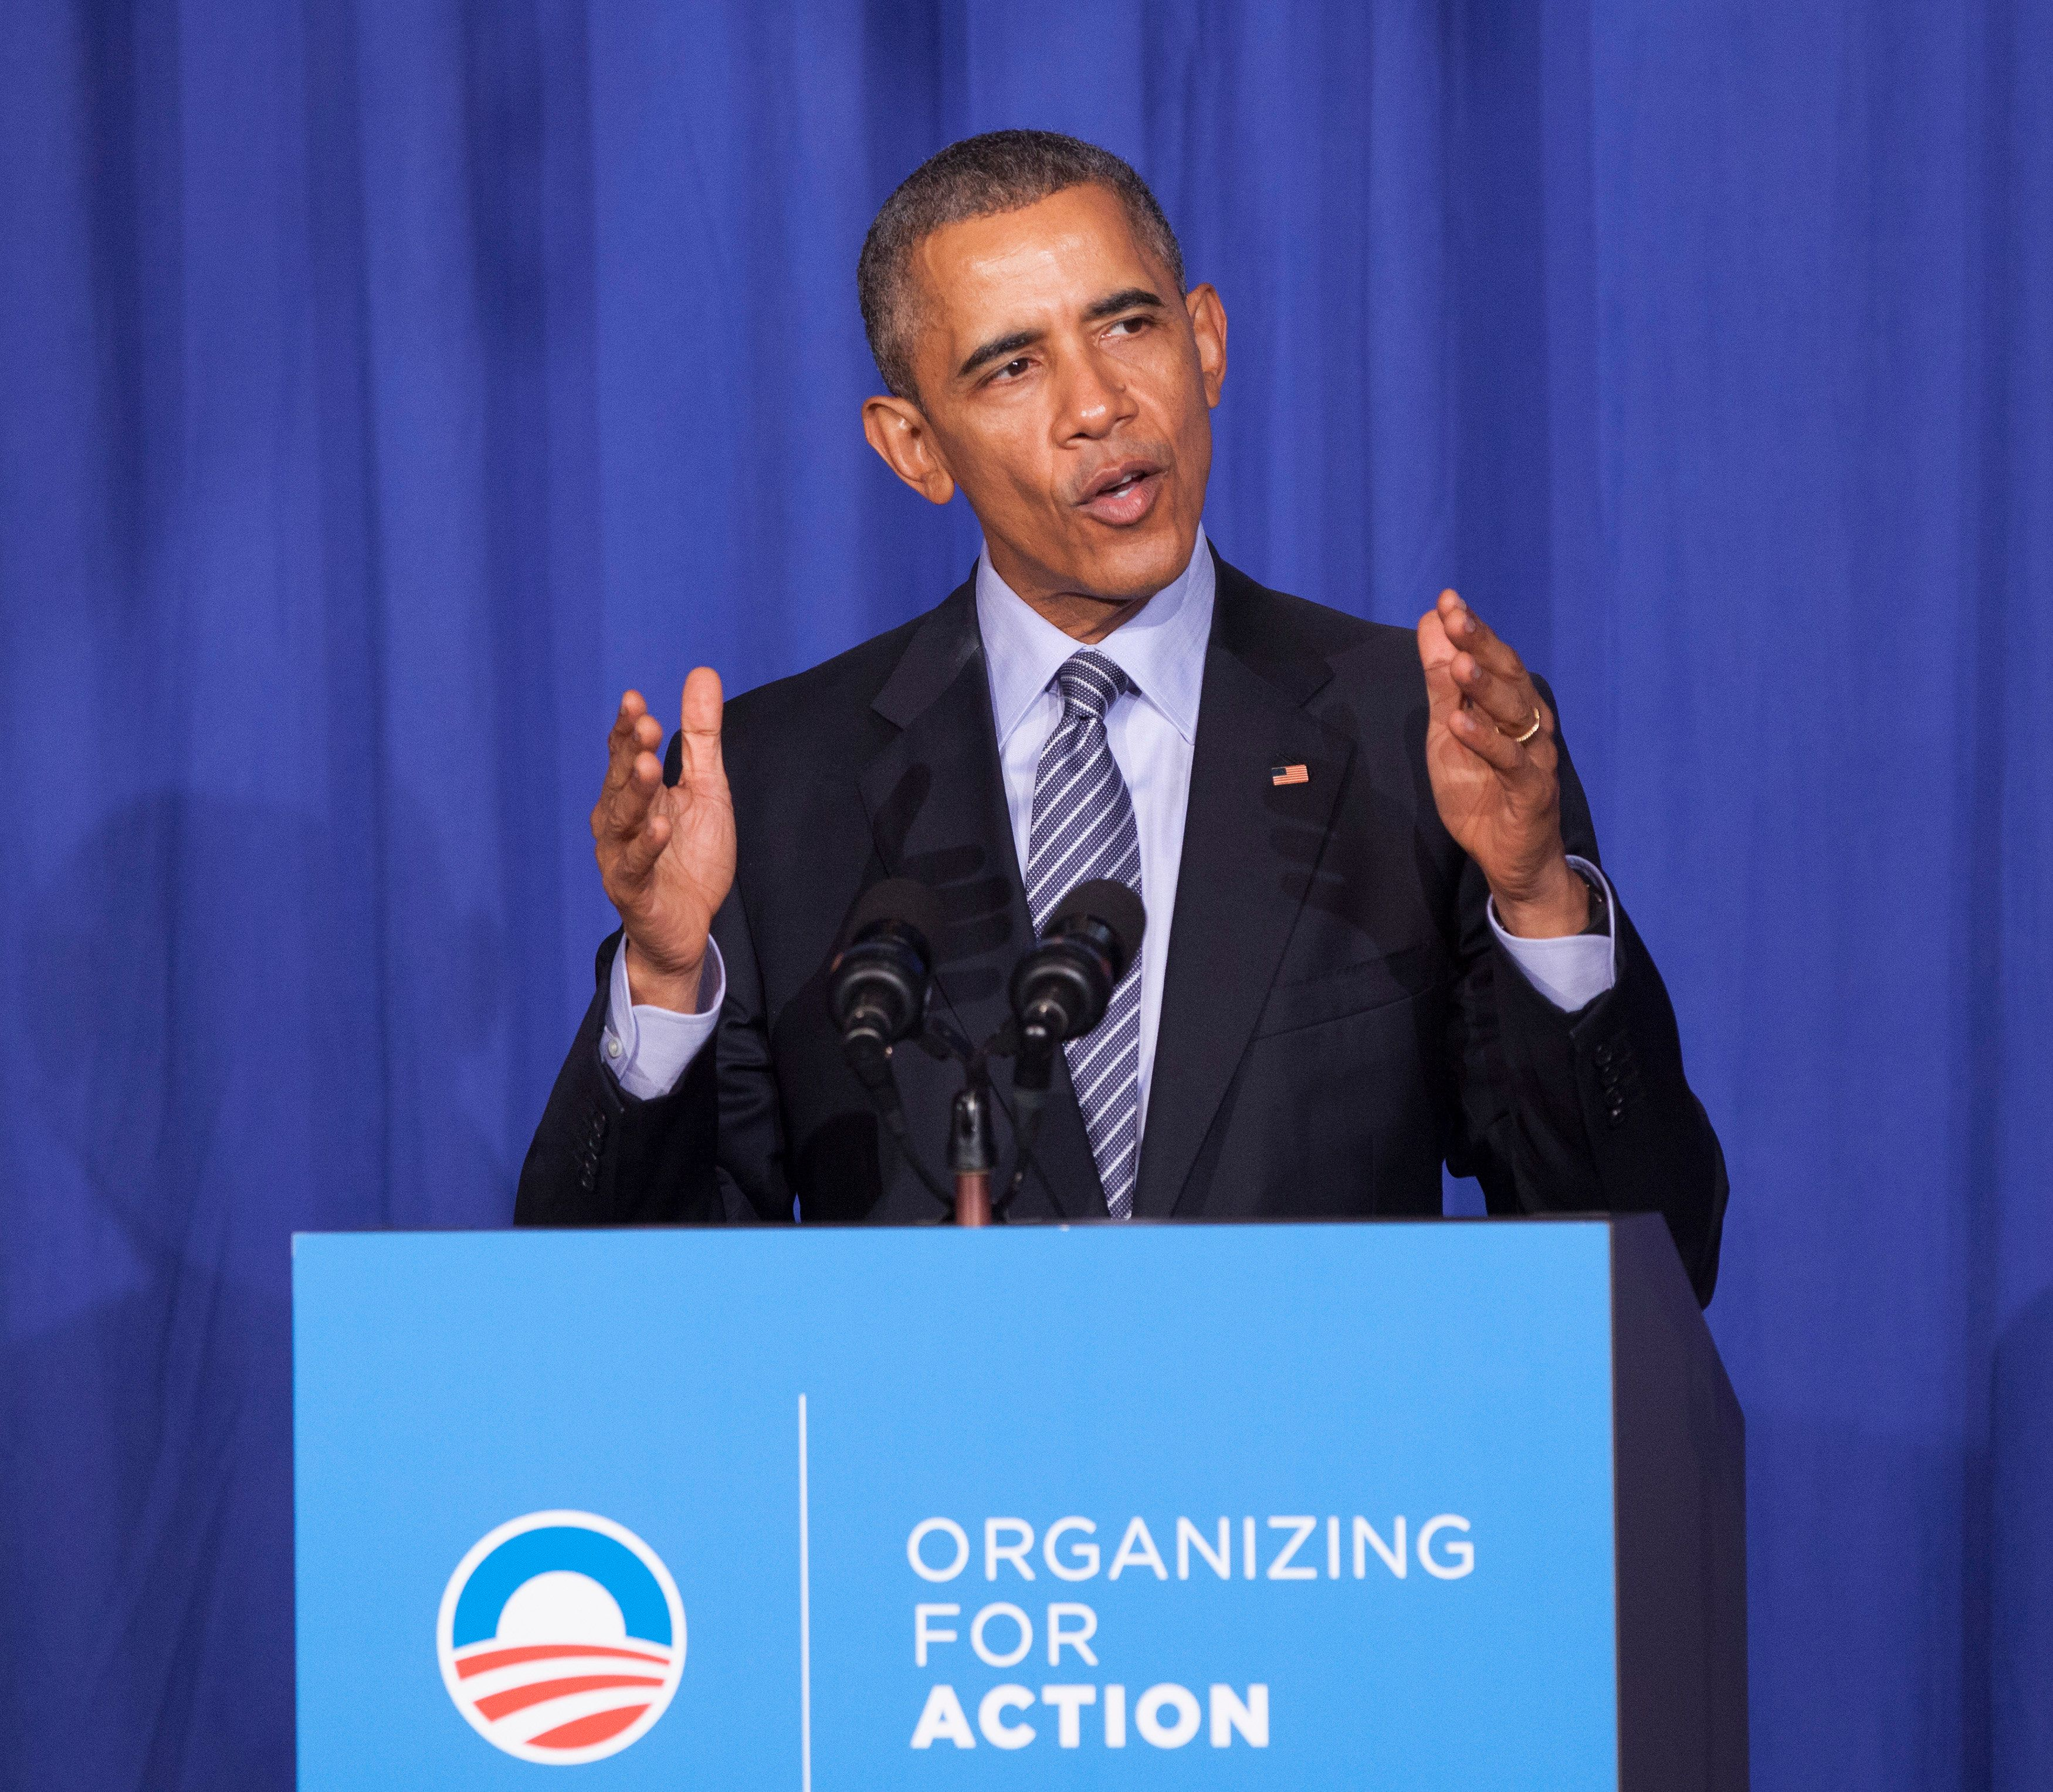 WASHINGTON, DC - NOVEMBER 9:  U.S. President Barack Obama makes remarks at an Organizing for Action dinner on November 9, 2015 in Washington, DC.  Organizing for Action is a community organizing project that supports the policies of President Obama. (Photo by Chris Kleponis-Pool/Getty Images)